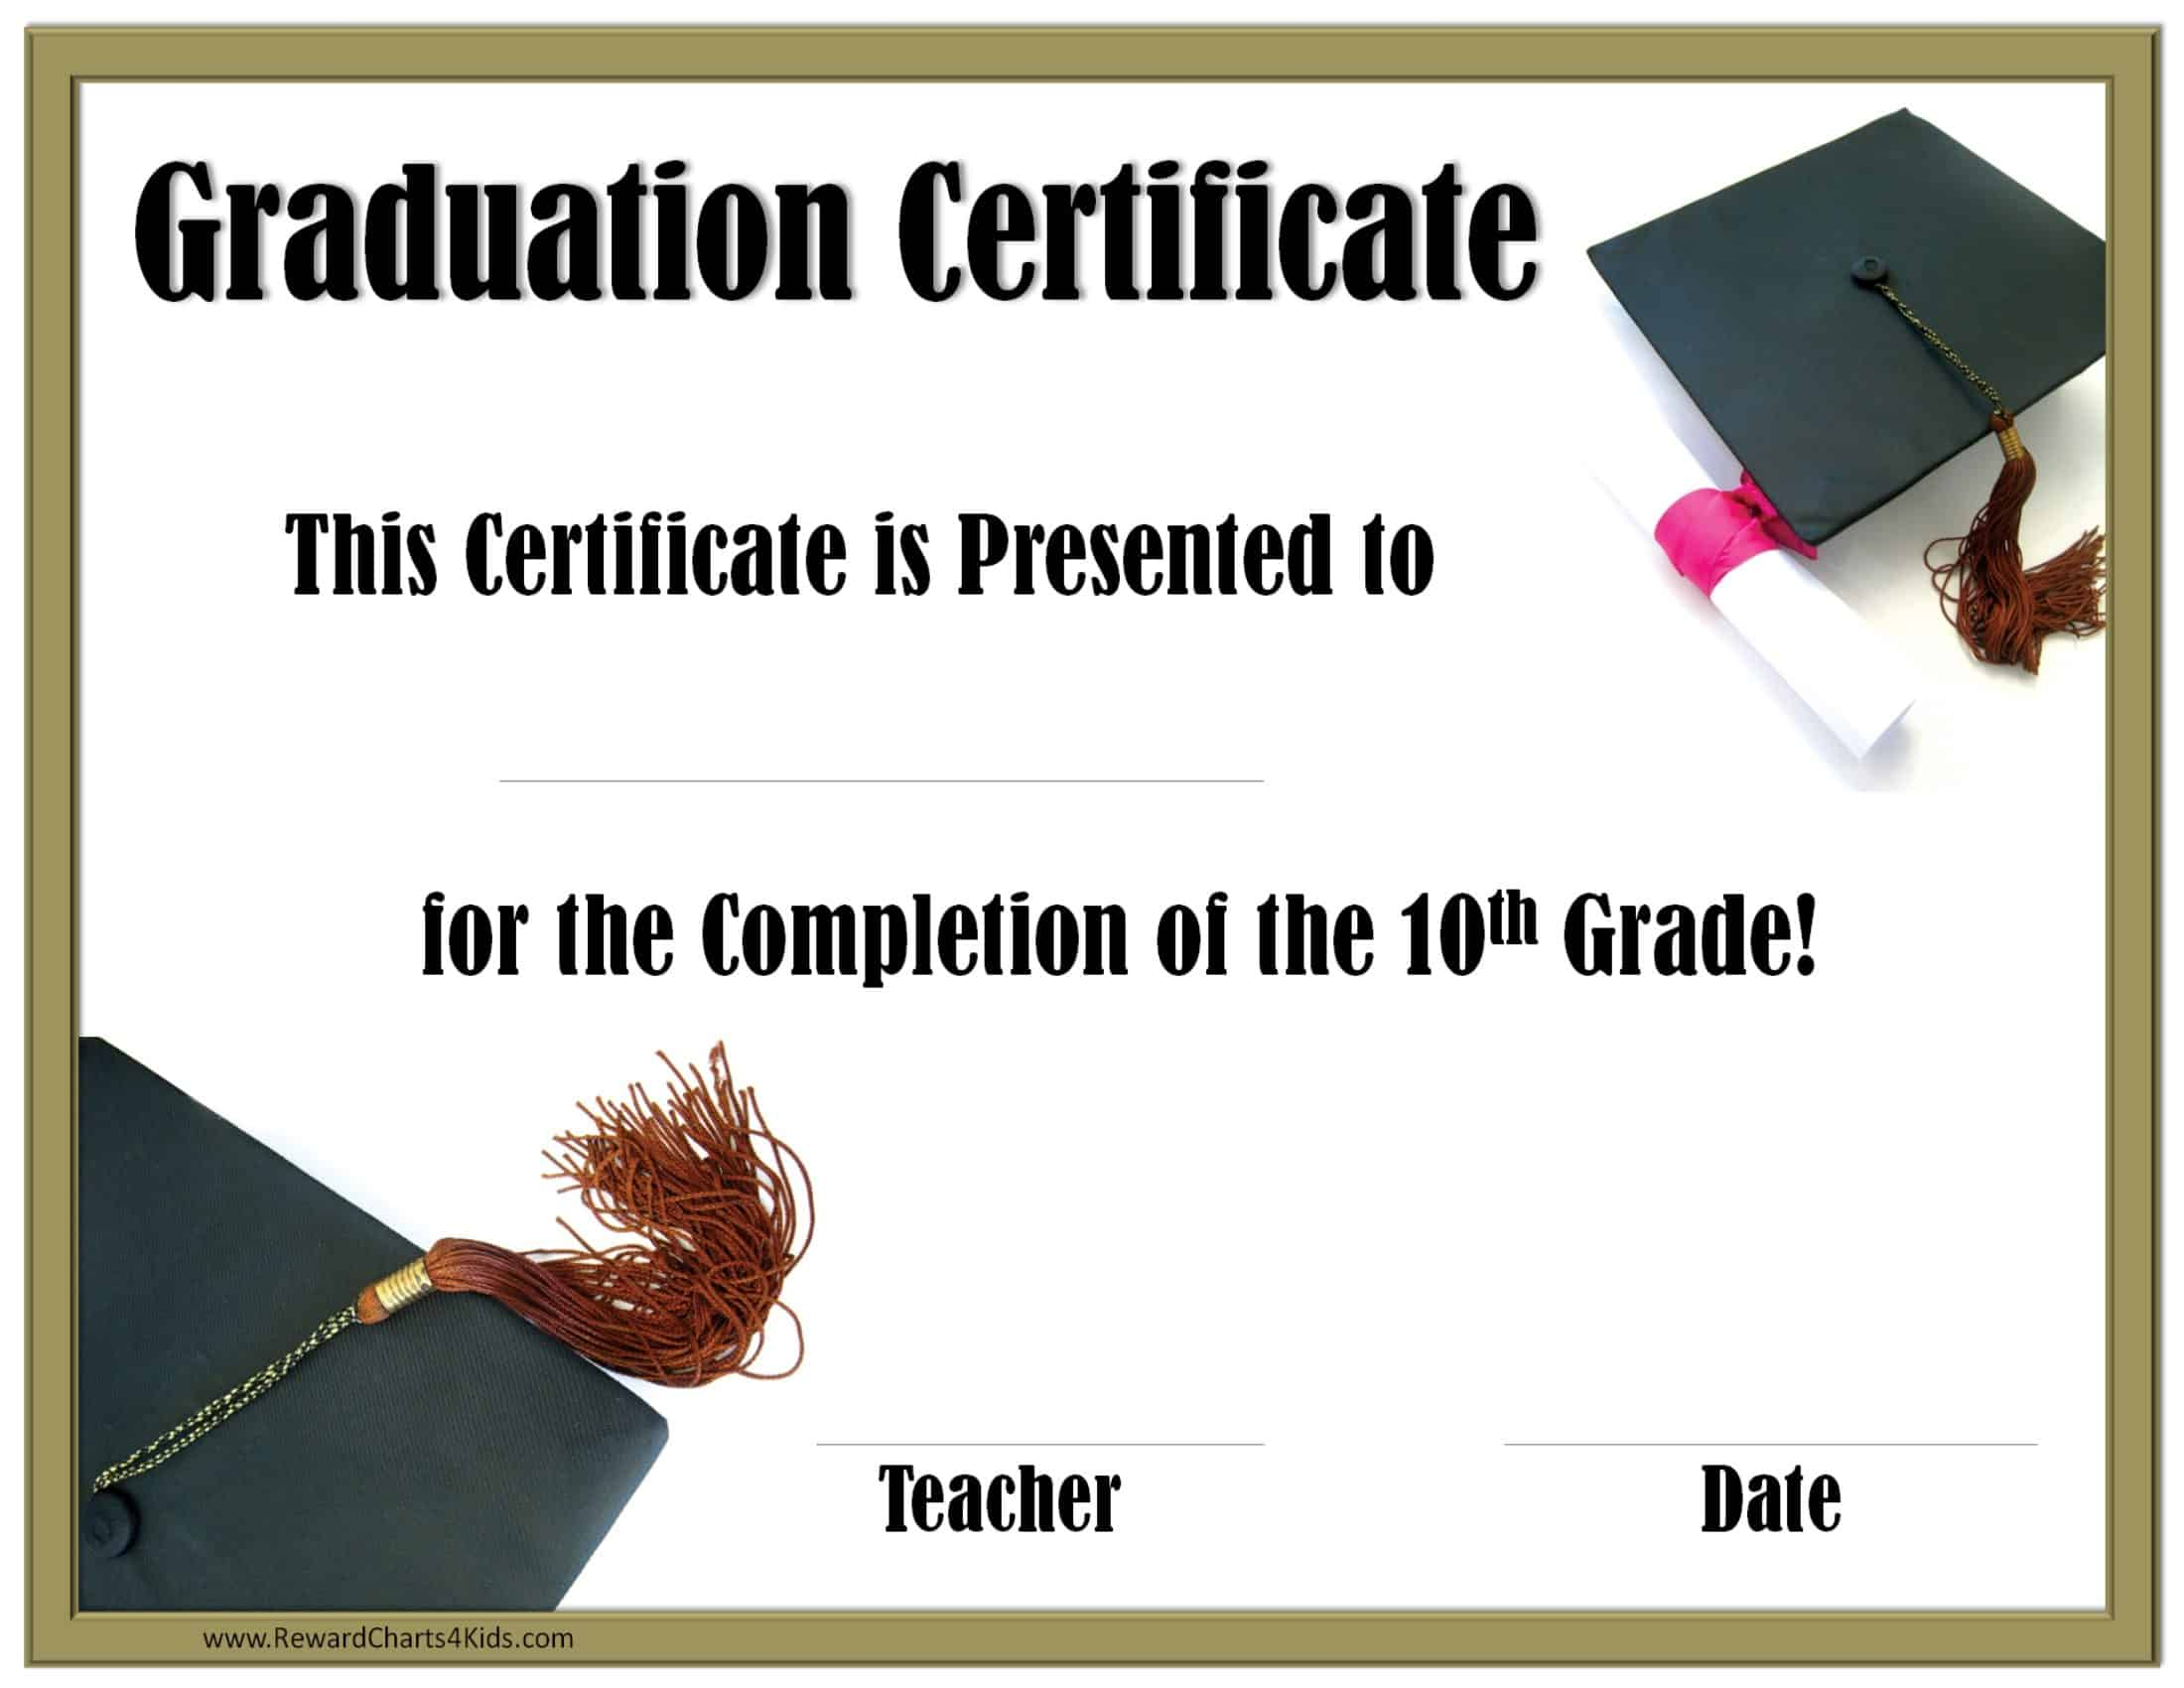 School Graduation Certificates – Graduation Certificate Wording